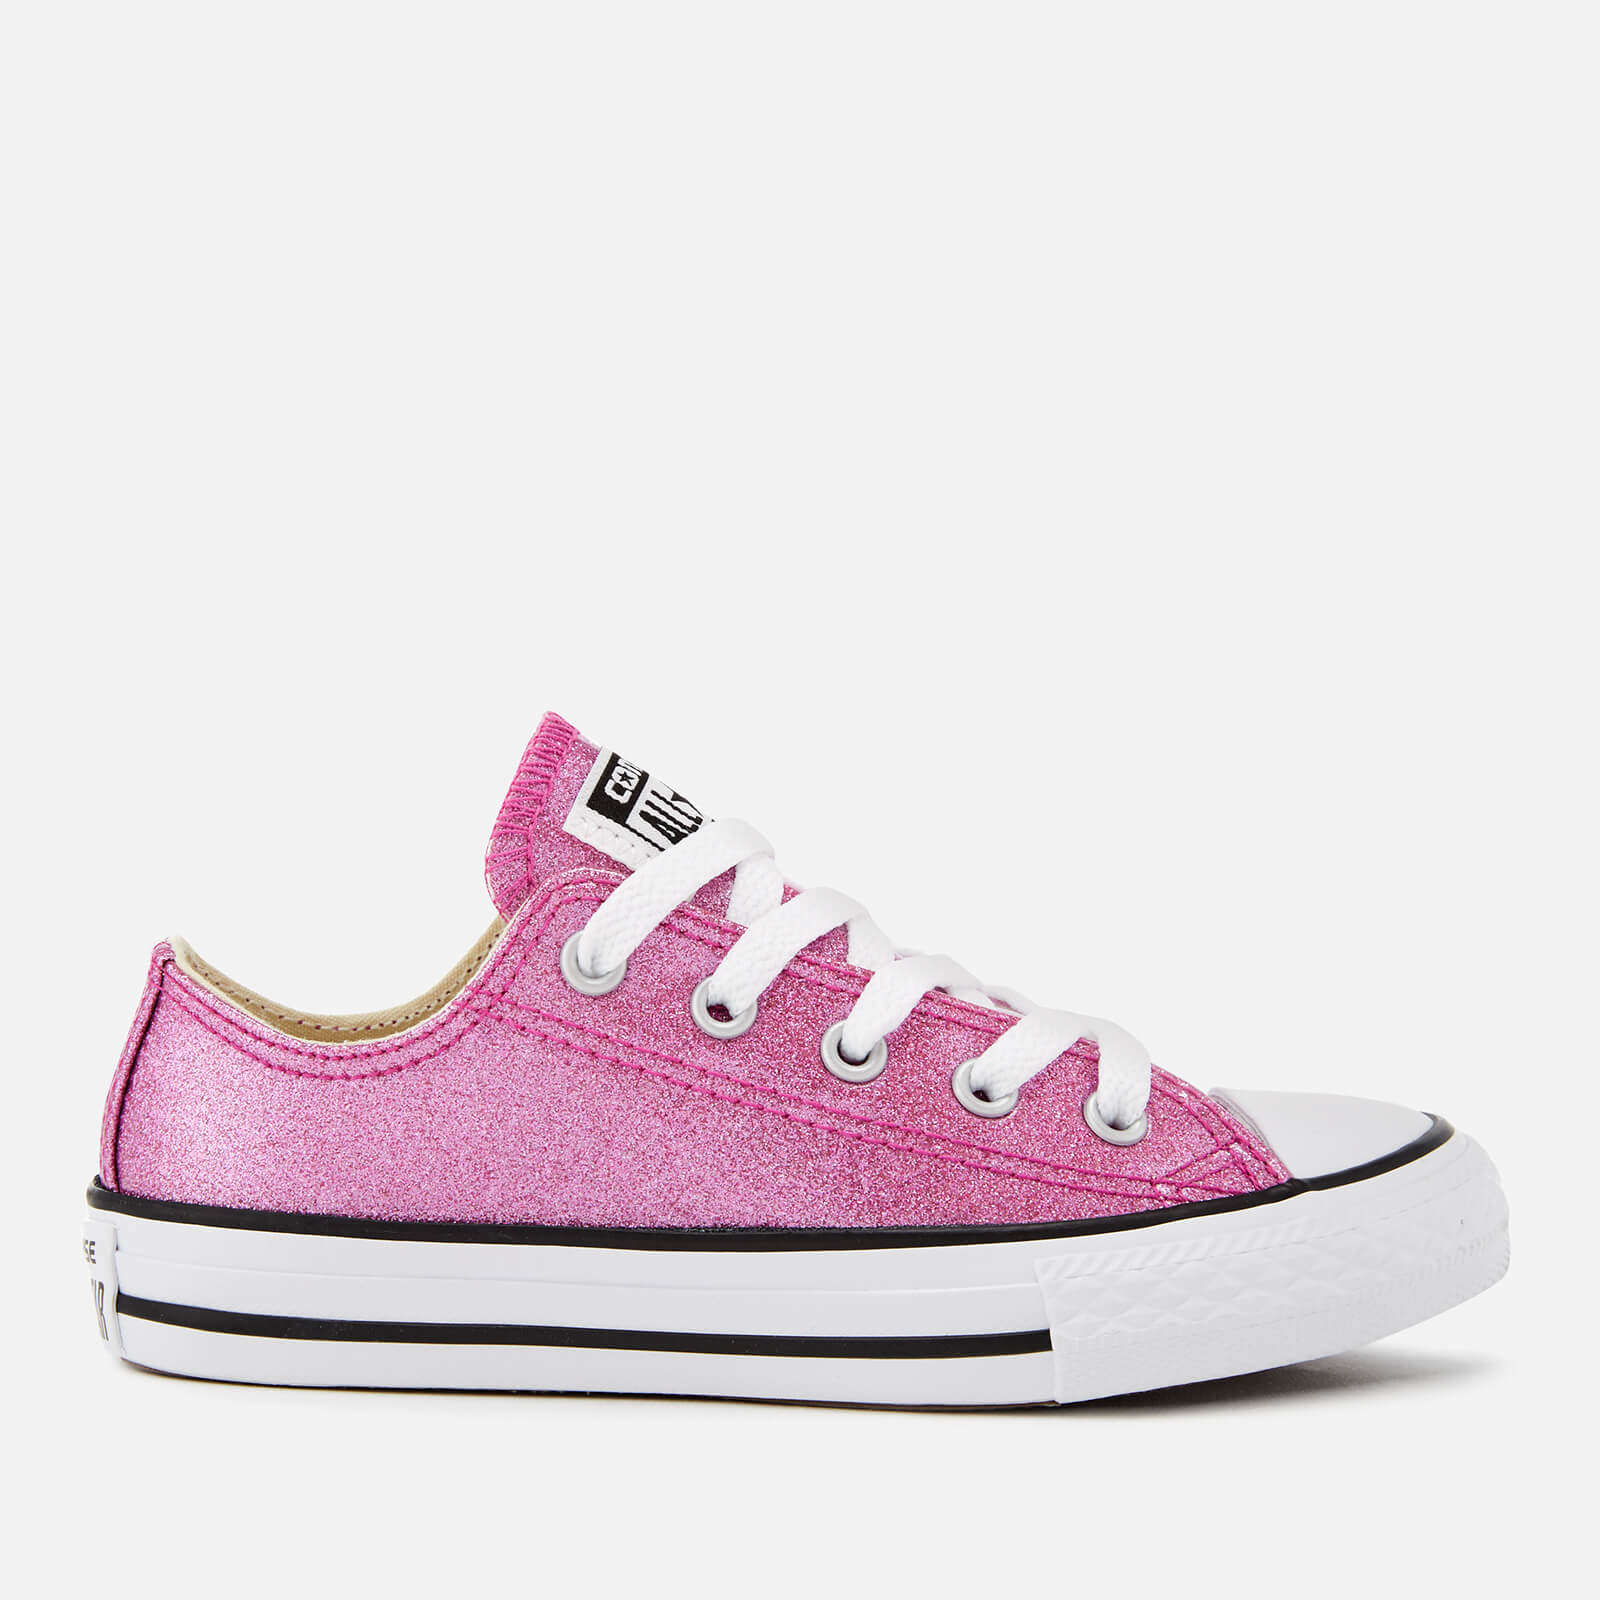 4d5ce08301c4 Converse Kids  Chuck Taylor All Star Ox Trainers - Bright  Violet Natural White Junior Clothing